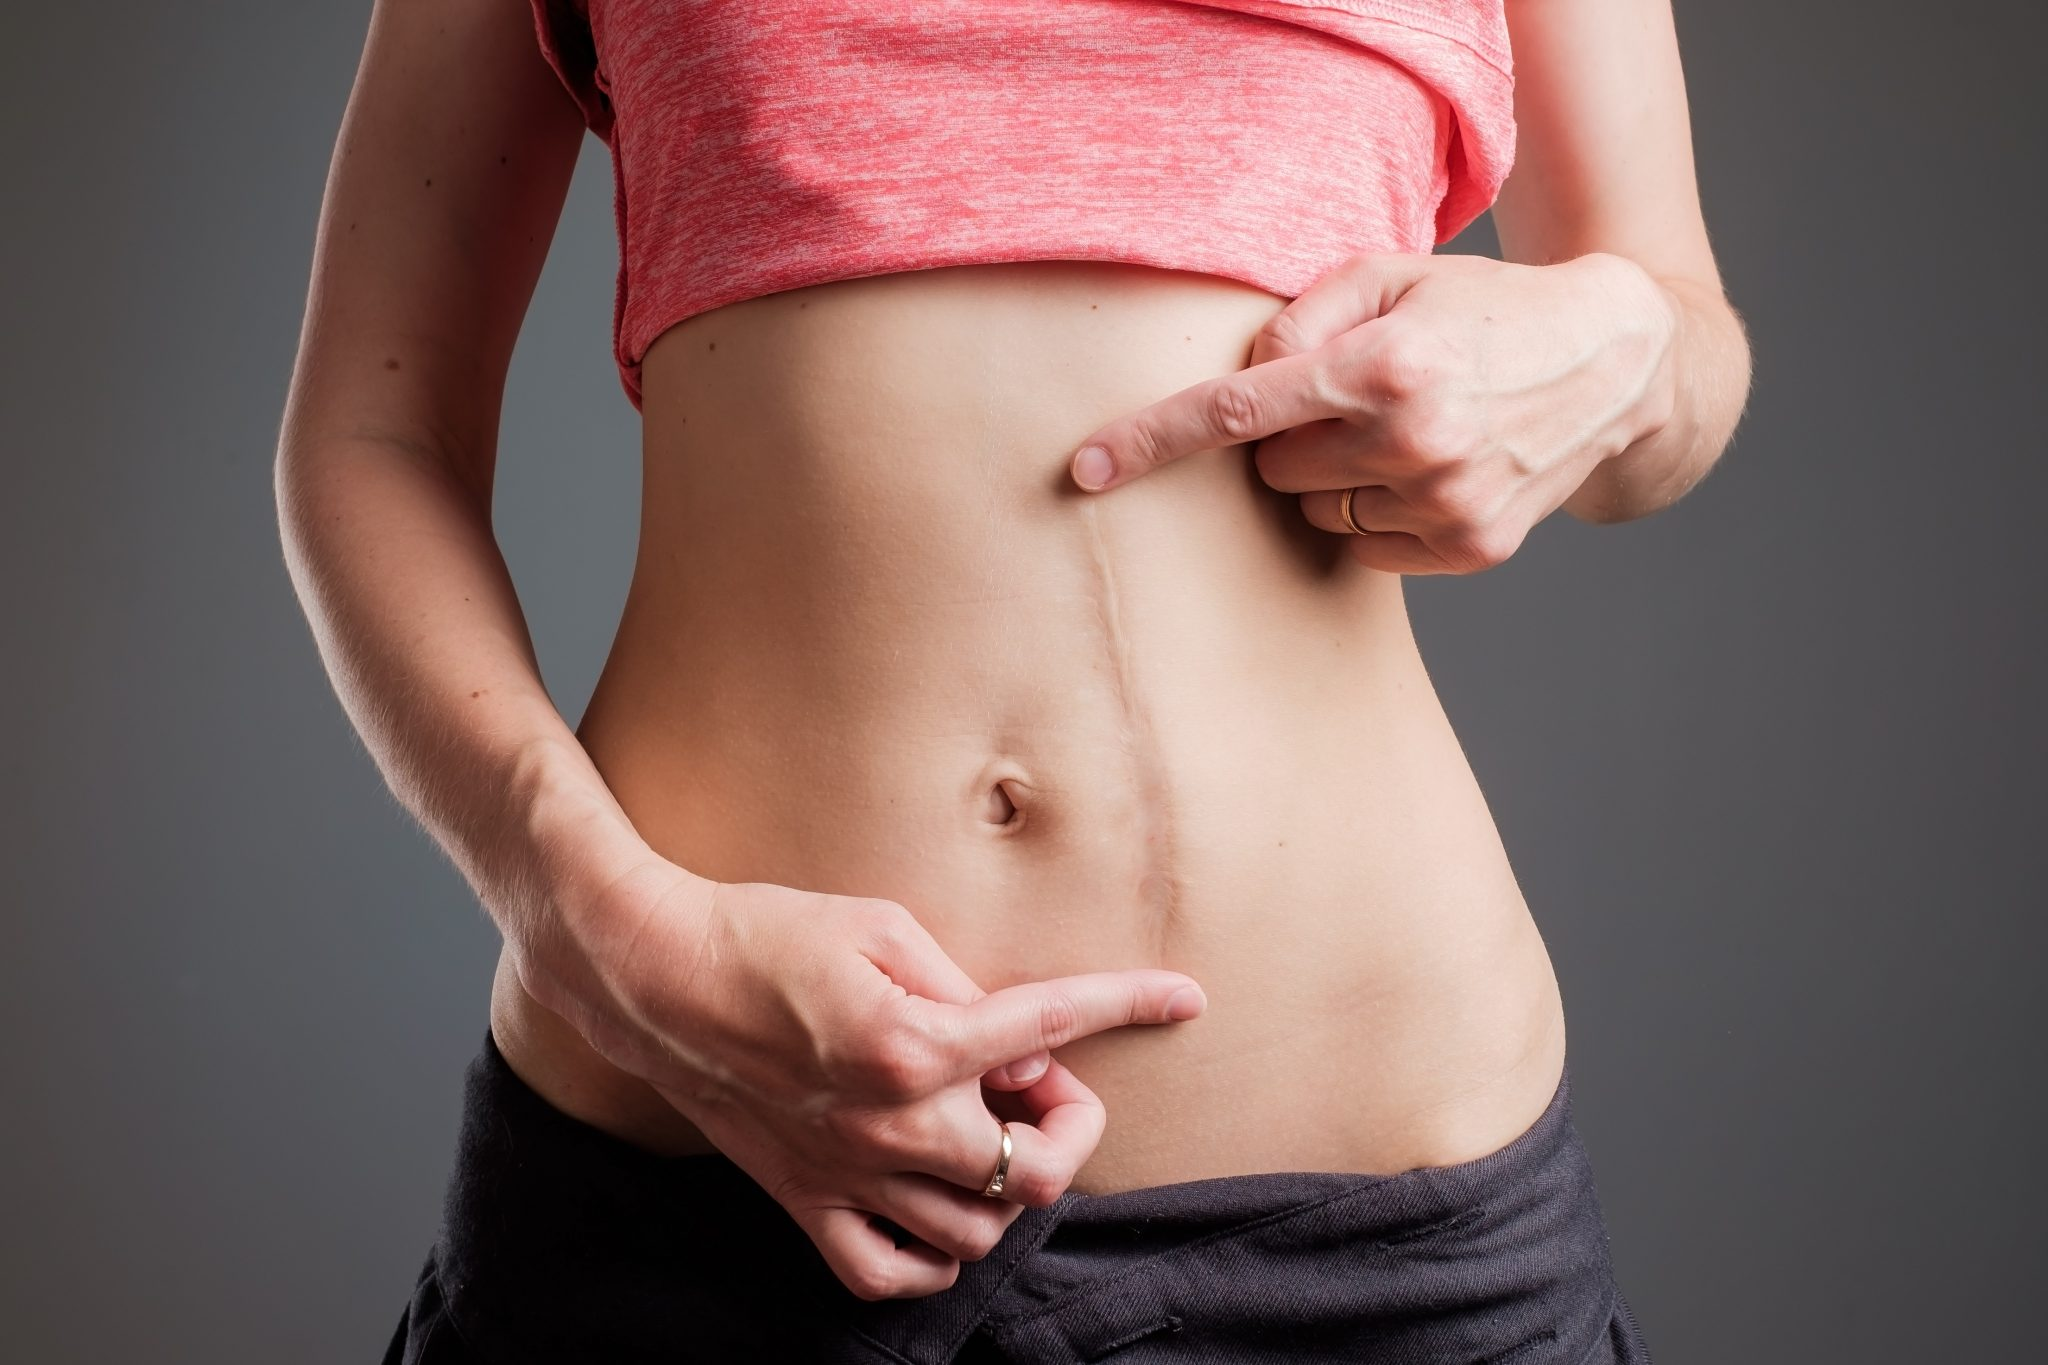 European woman with long abdominal scars after operation standing on black color